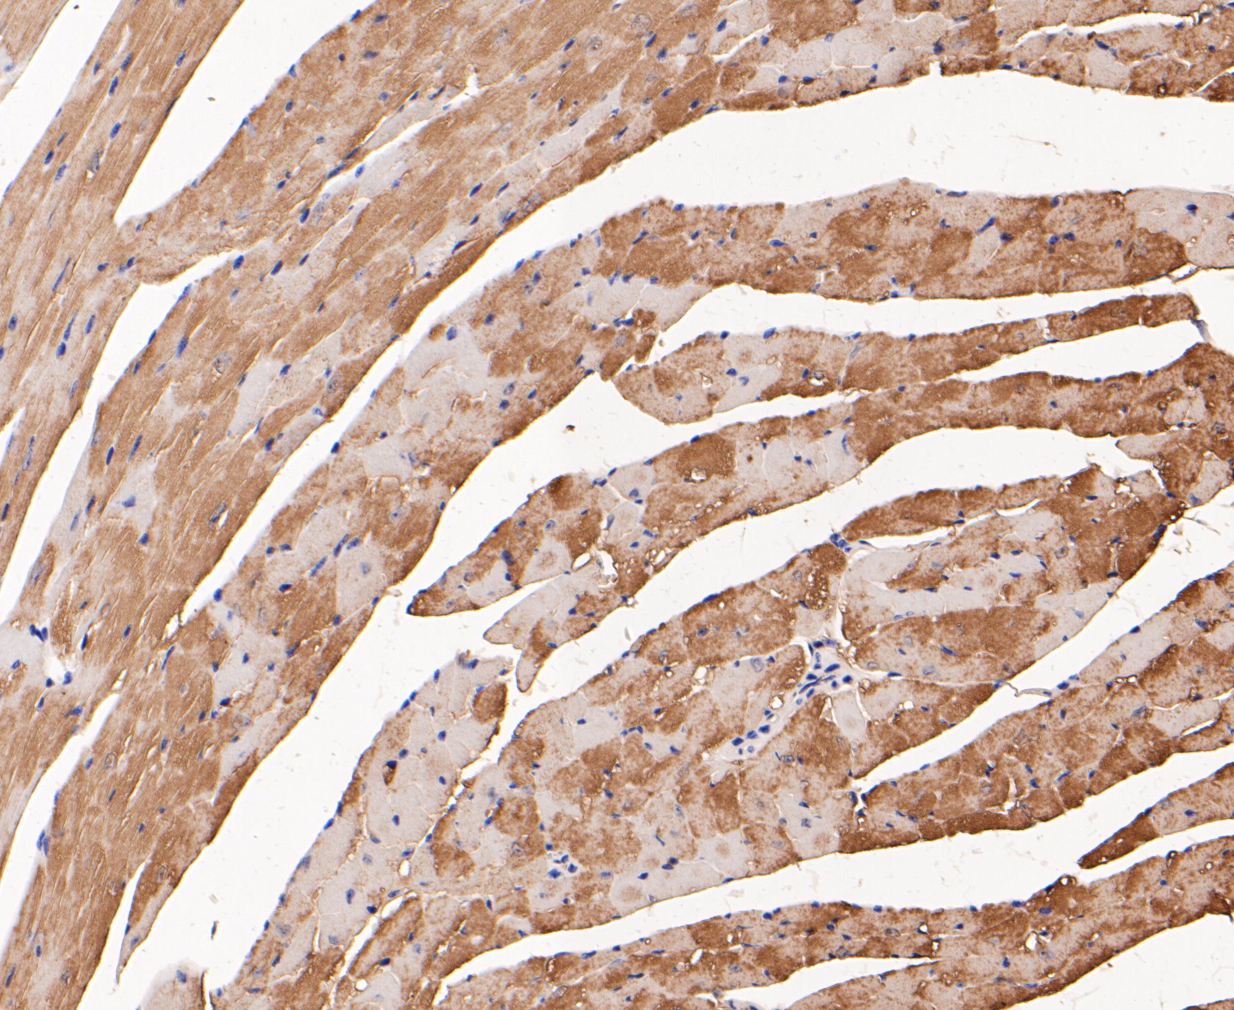 Immunohistochemical analysis of paraffin-embedded mouse heart muscle tissue using anti-Myoglobin antibody. The section was pre-treated using heat mediated antigen retrieval with Tris-EDTA buffer (pH 8.0-8.4) for 20 minutes.The tissues were blocked in 5% BSA for 30 minutes at room temperature, washed with ddH2O and PBS, and then probed with the primary antibody (ER1901-17, 1/200) for 30 minutes at room temperature. The detection was performed using an HRP conjugated compact polymer system. DAB was used as the chromogen. Tissues were counterstained with hematoxylin and mounted with DPX.